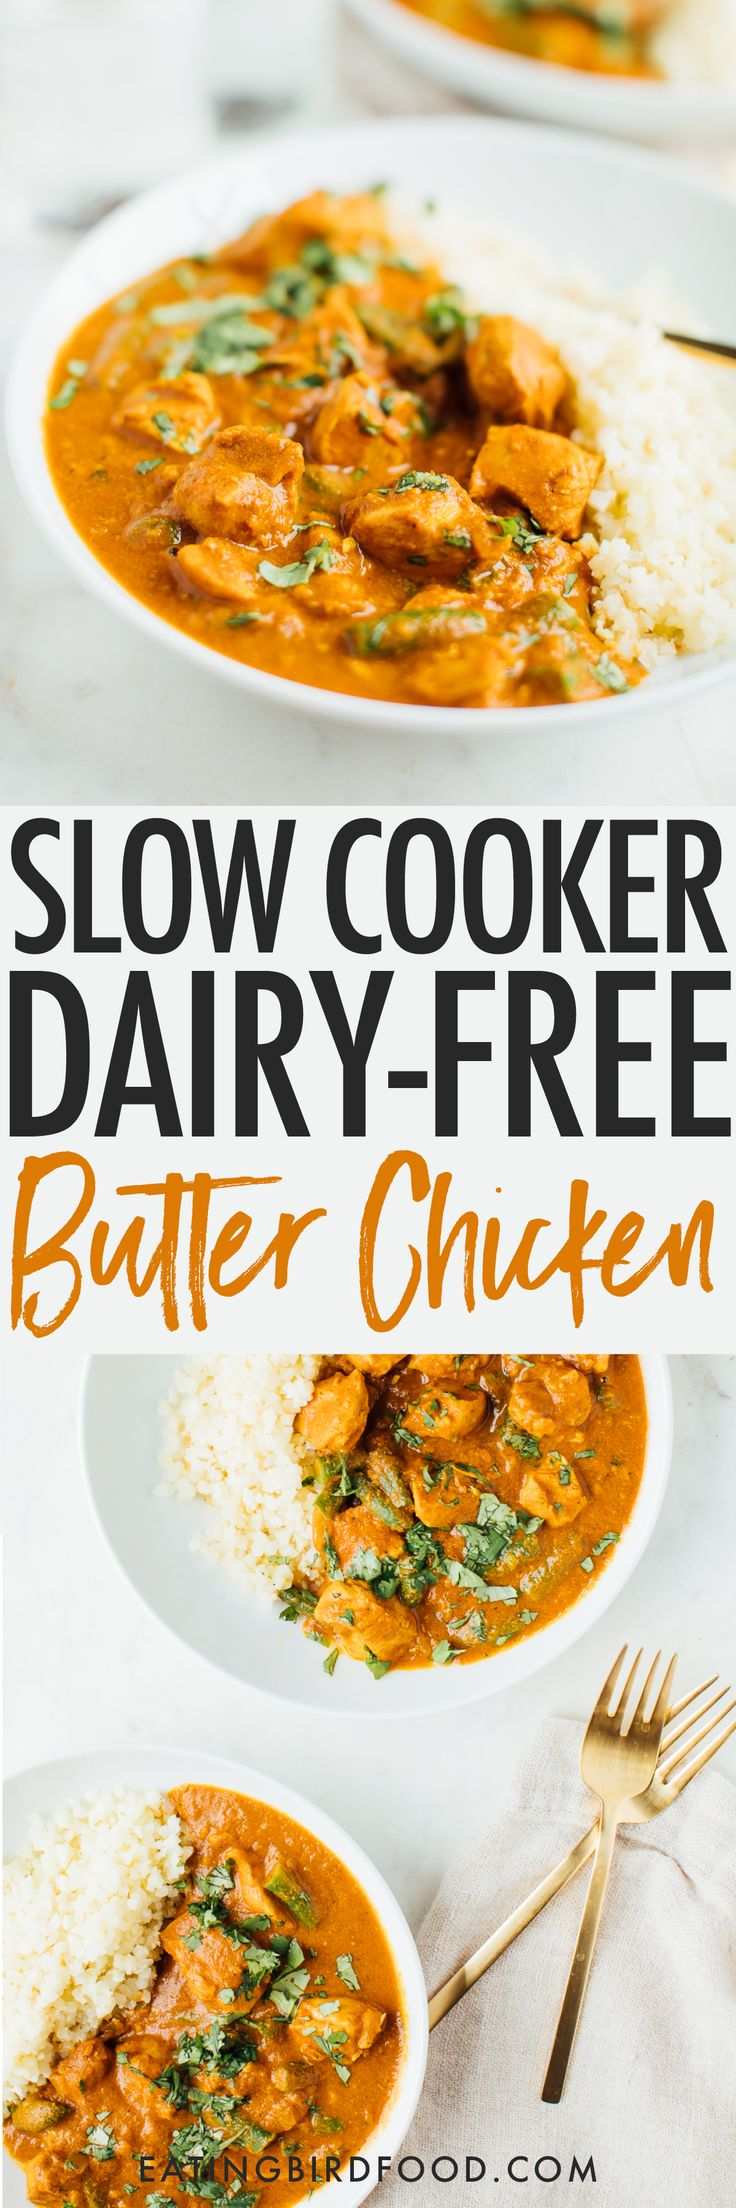 A lightened up version of an Indian food classic, you'll love this slow cooker dairy-free butter chicken recipe made with coconut oil and coconut milk. It's loaded with flavor and absolutely delicious served over cauliflower rice. Paleo, grain-free and dairy-free. #trusttheleaf #AD @naturesway